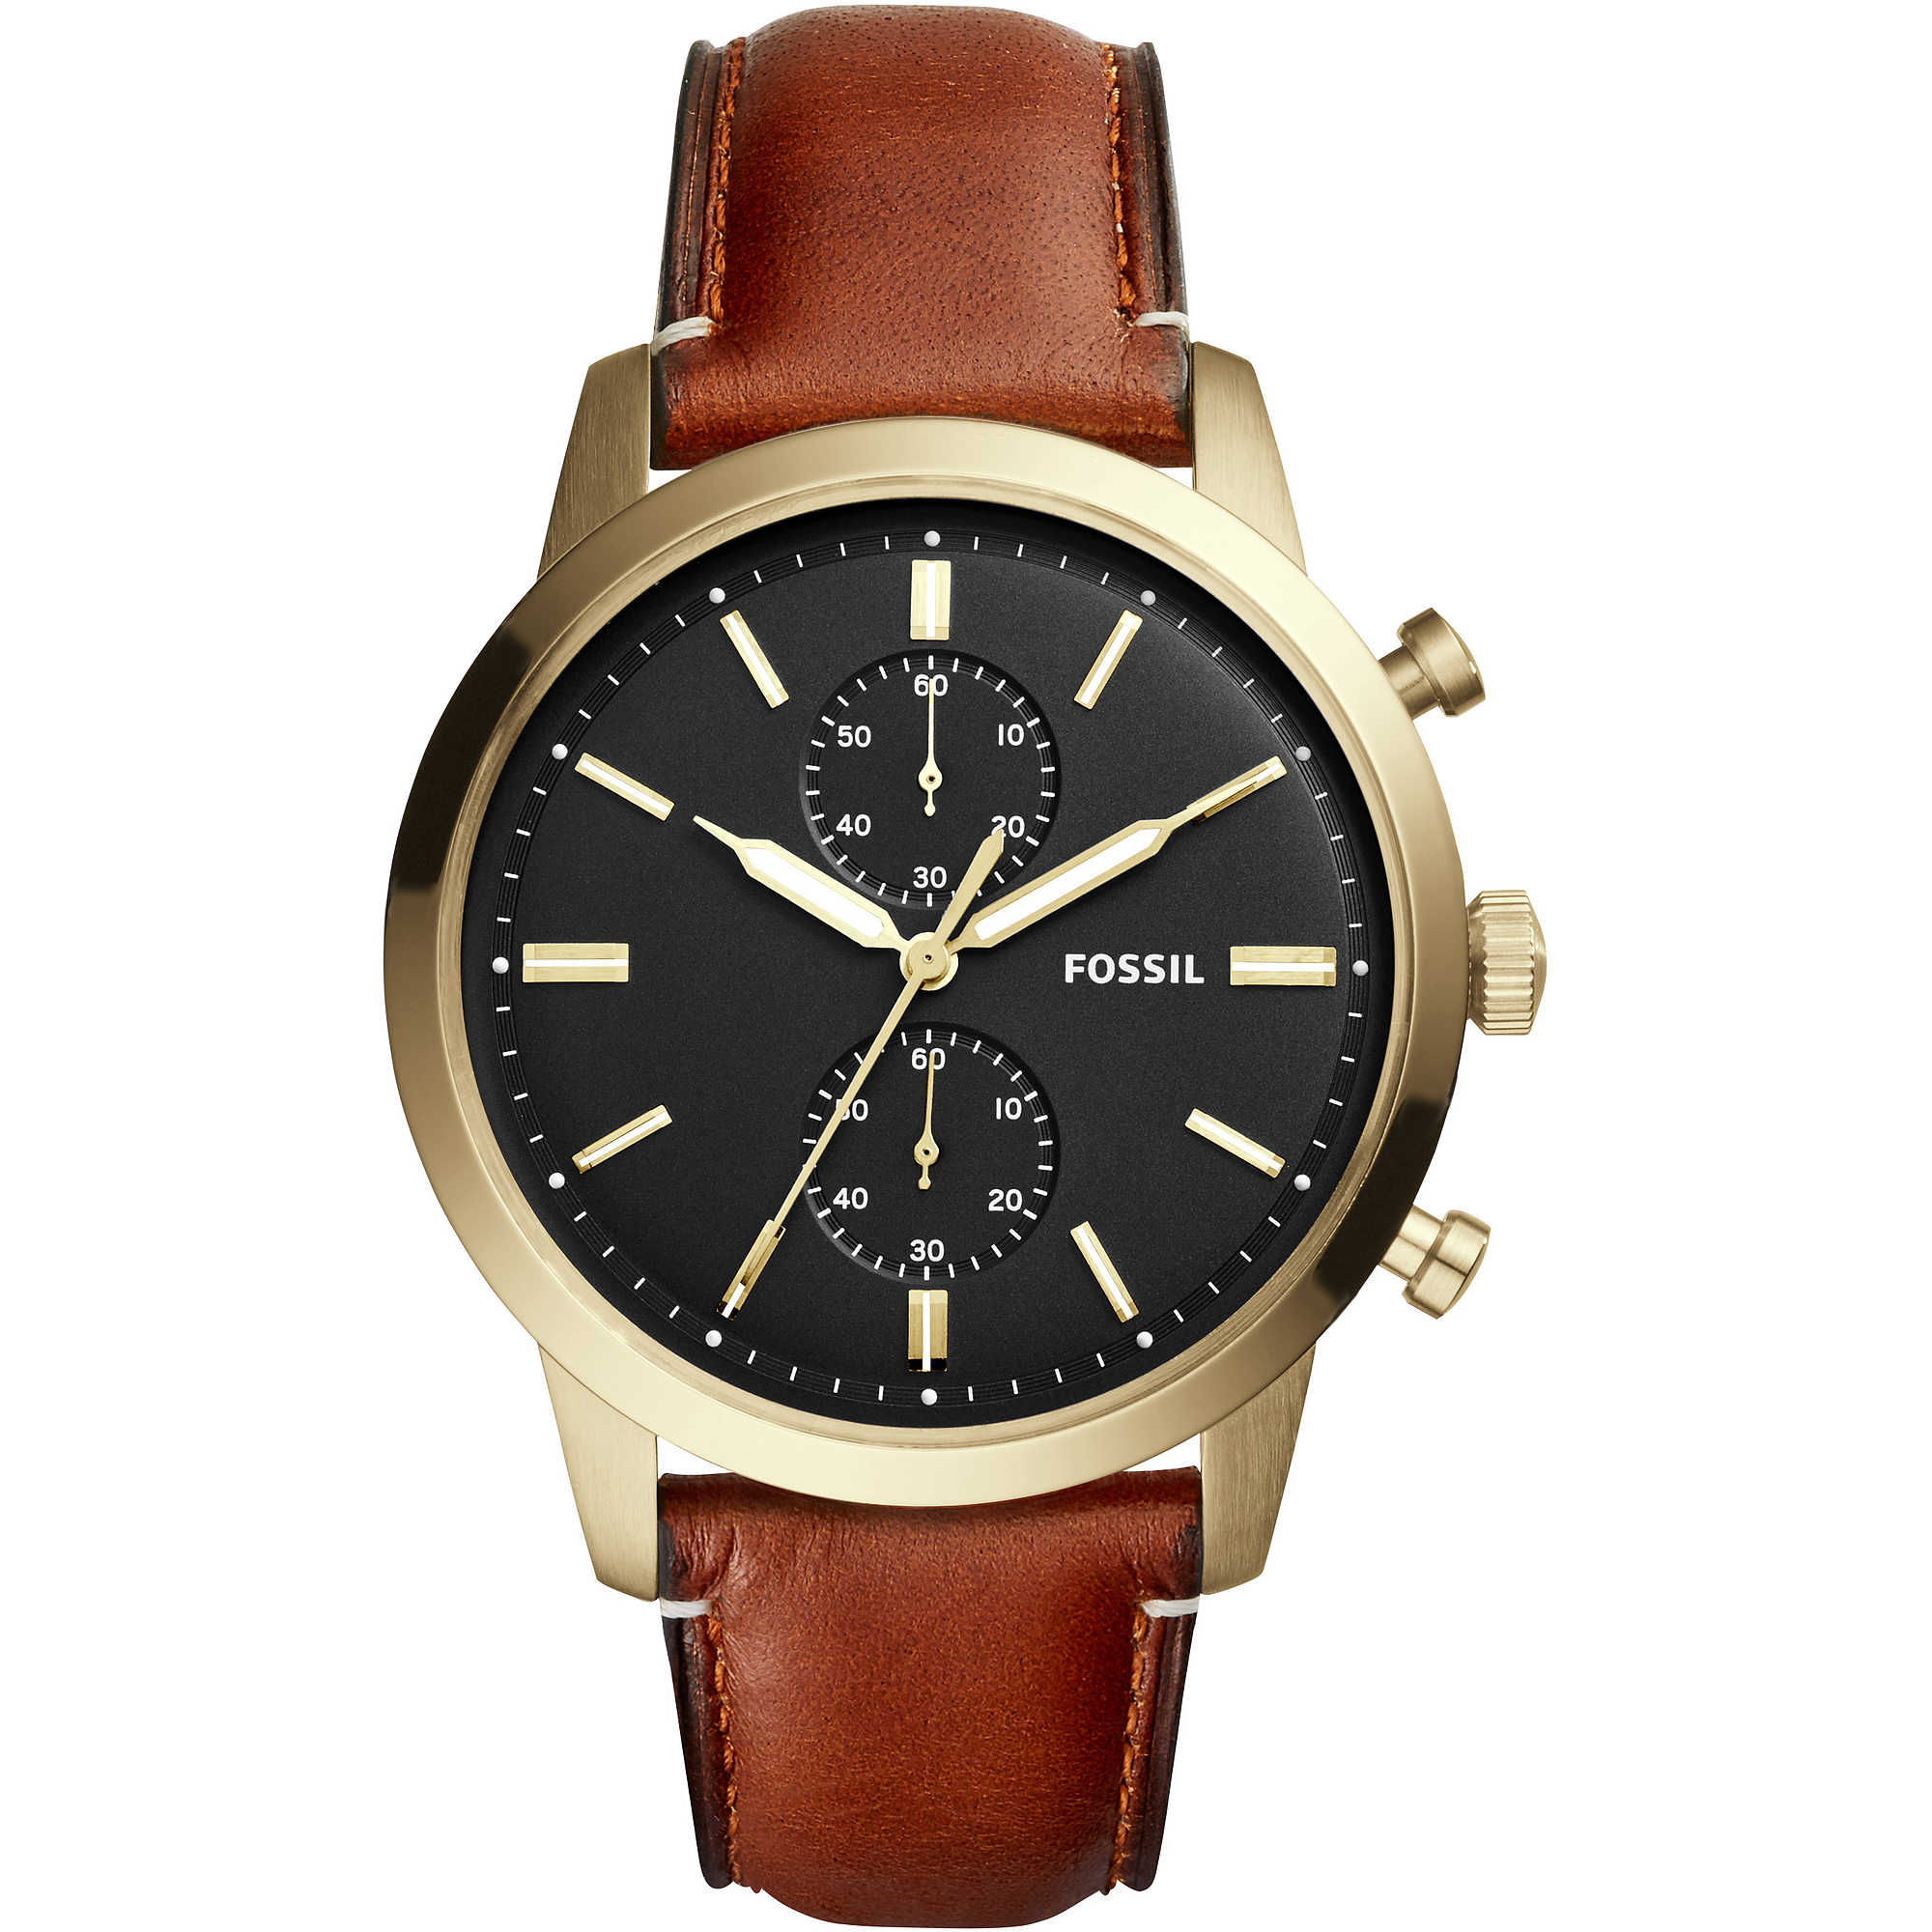 grant high chronograph sport gallery steel watches watch stainless fossil quality